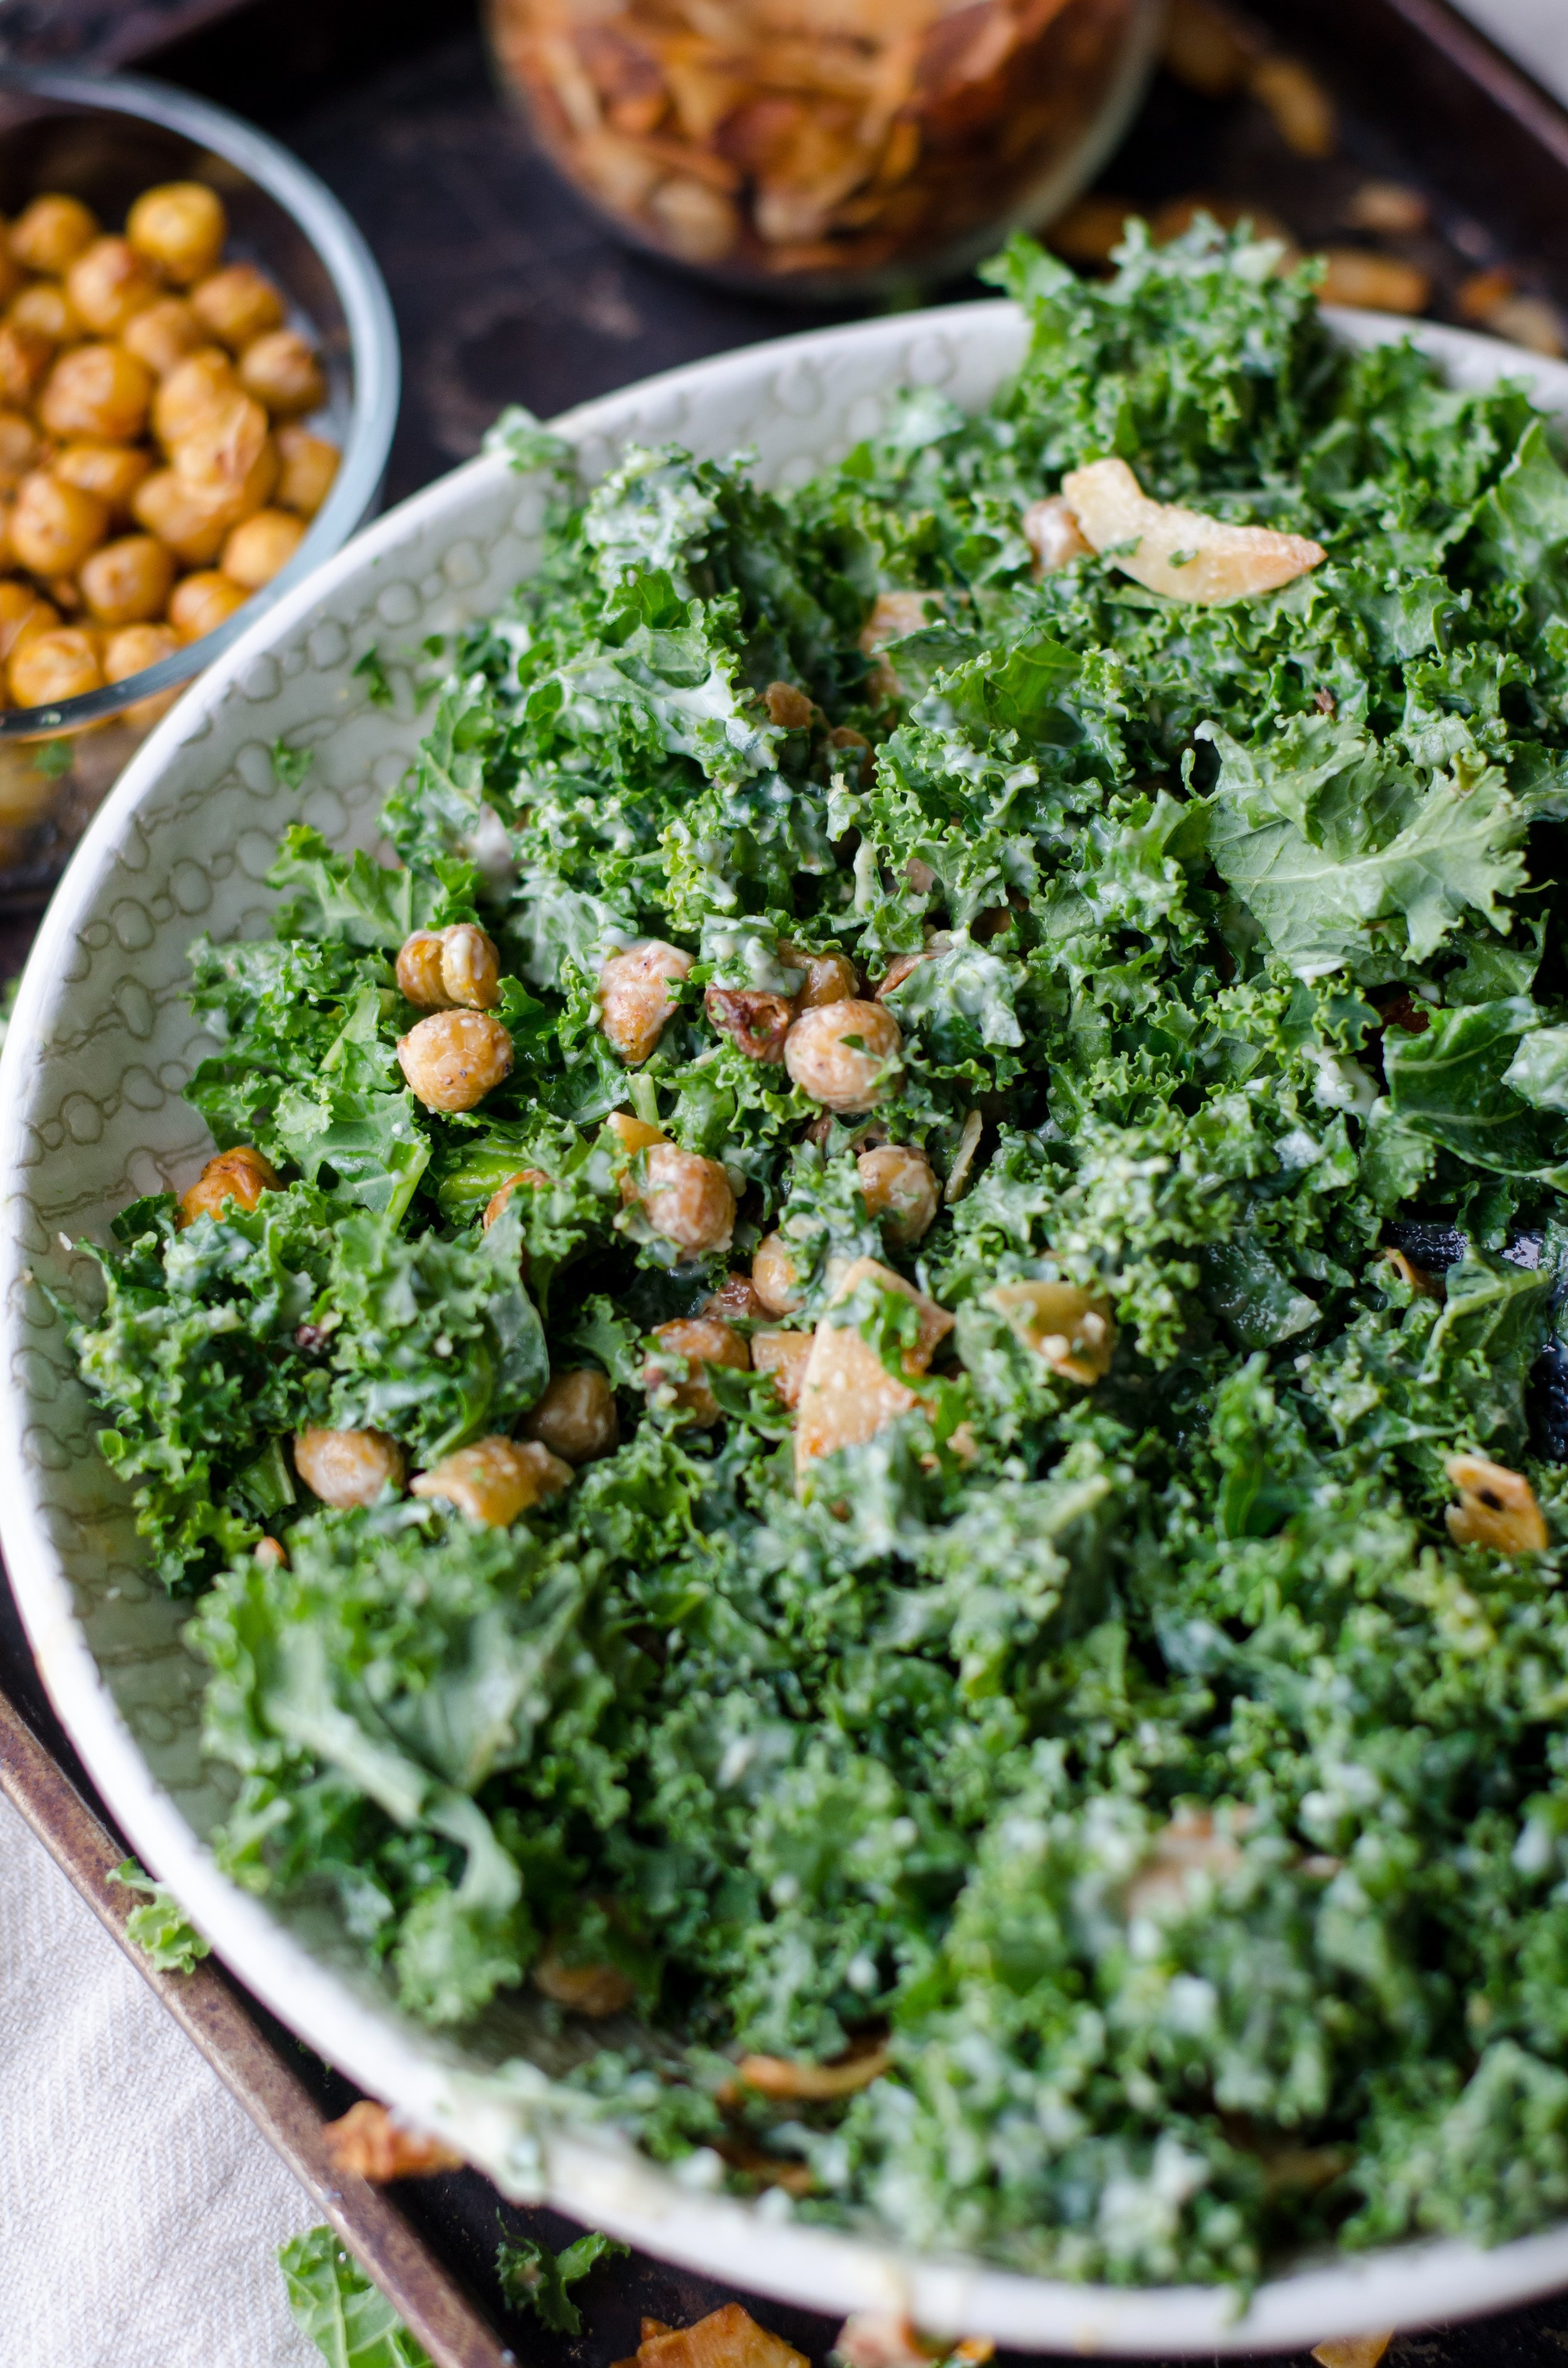 If you know me well, you know my kale salad. Kale, lemon juice, avocado oil, salt, pepper, maple syrup and toasted almonds or roasted chickpeas.